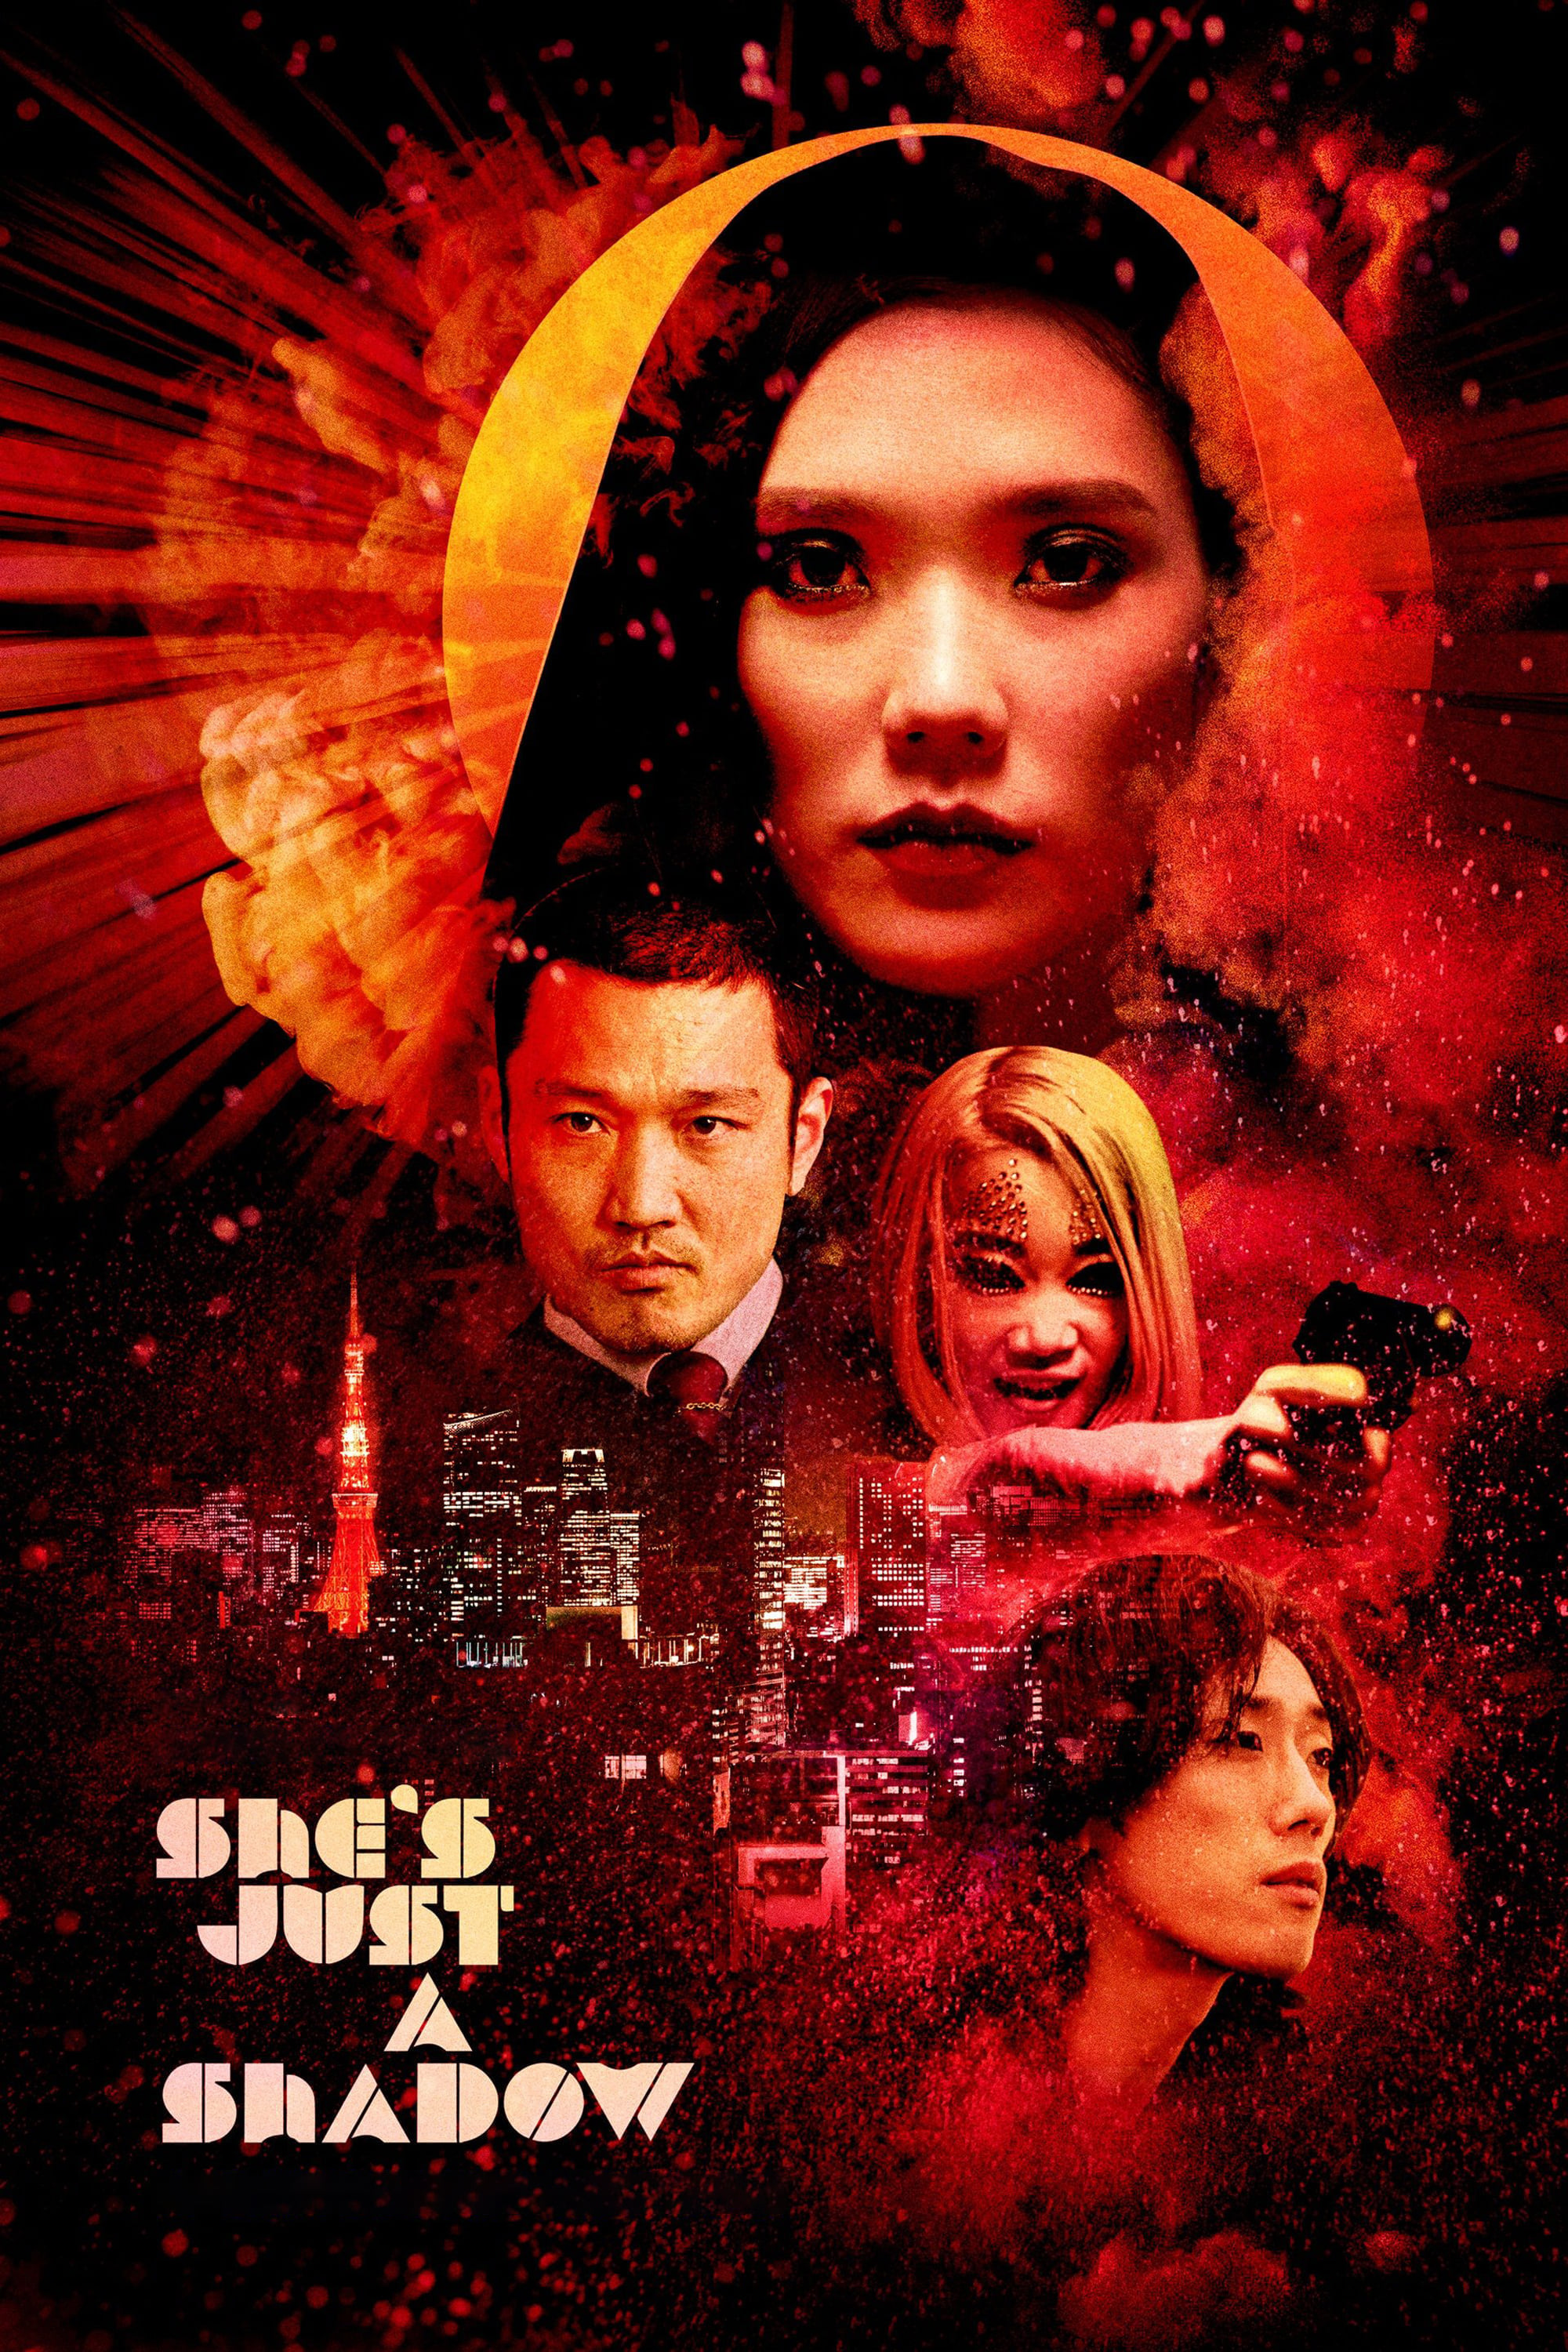 She's Just a Shadow (2019)